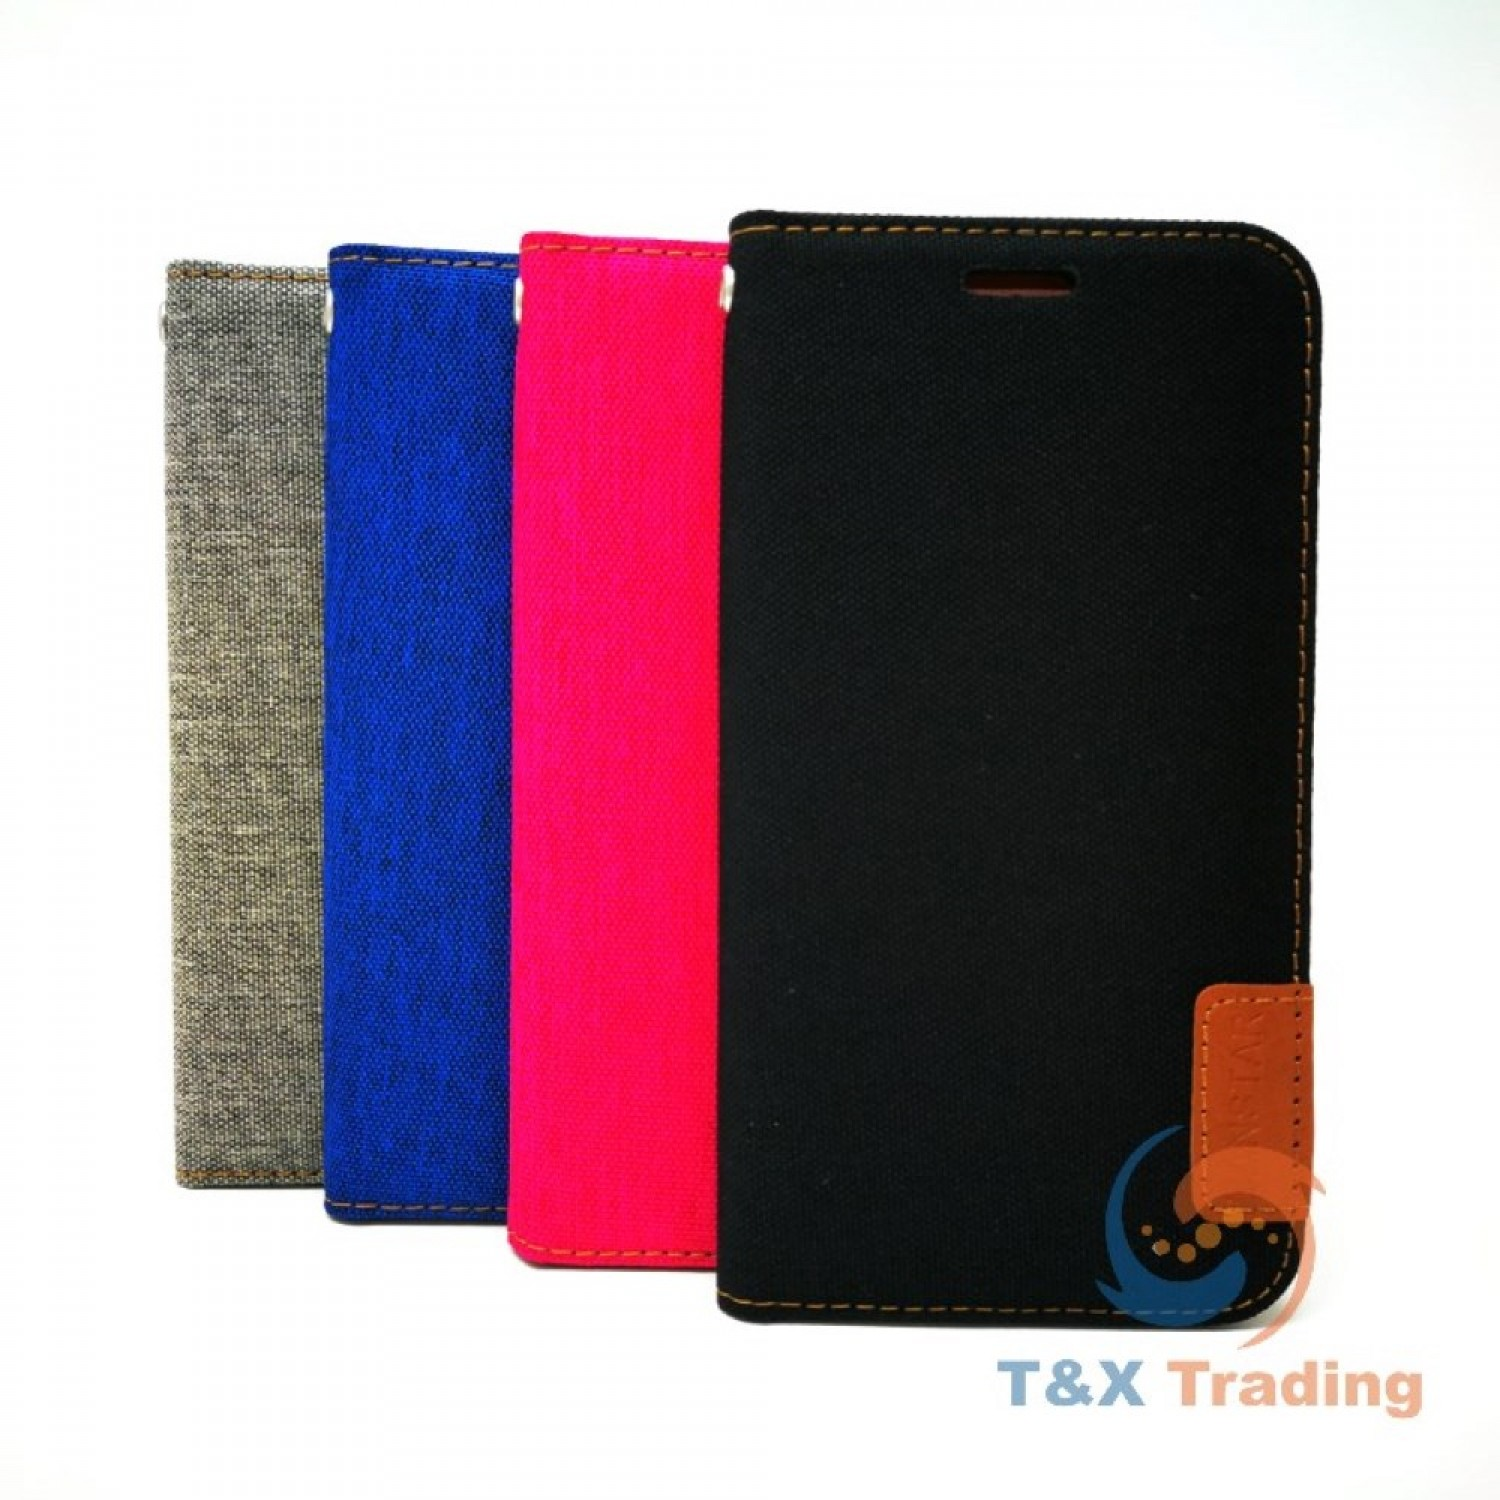 Samsung Galaxy S9 Plus - TanStar Fabric Wallet Case with Magnetic Closure